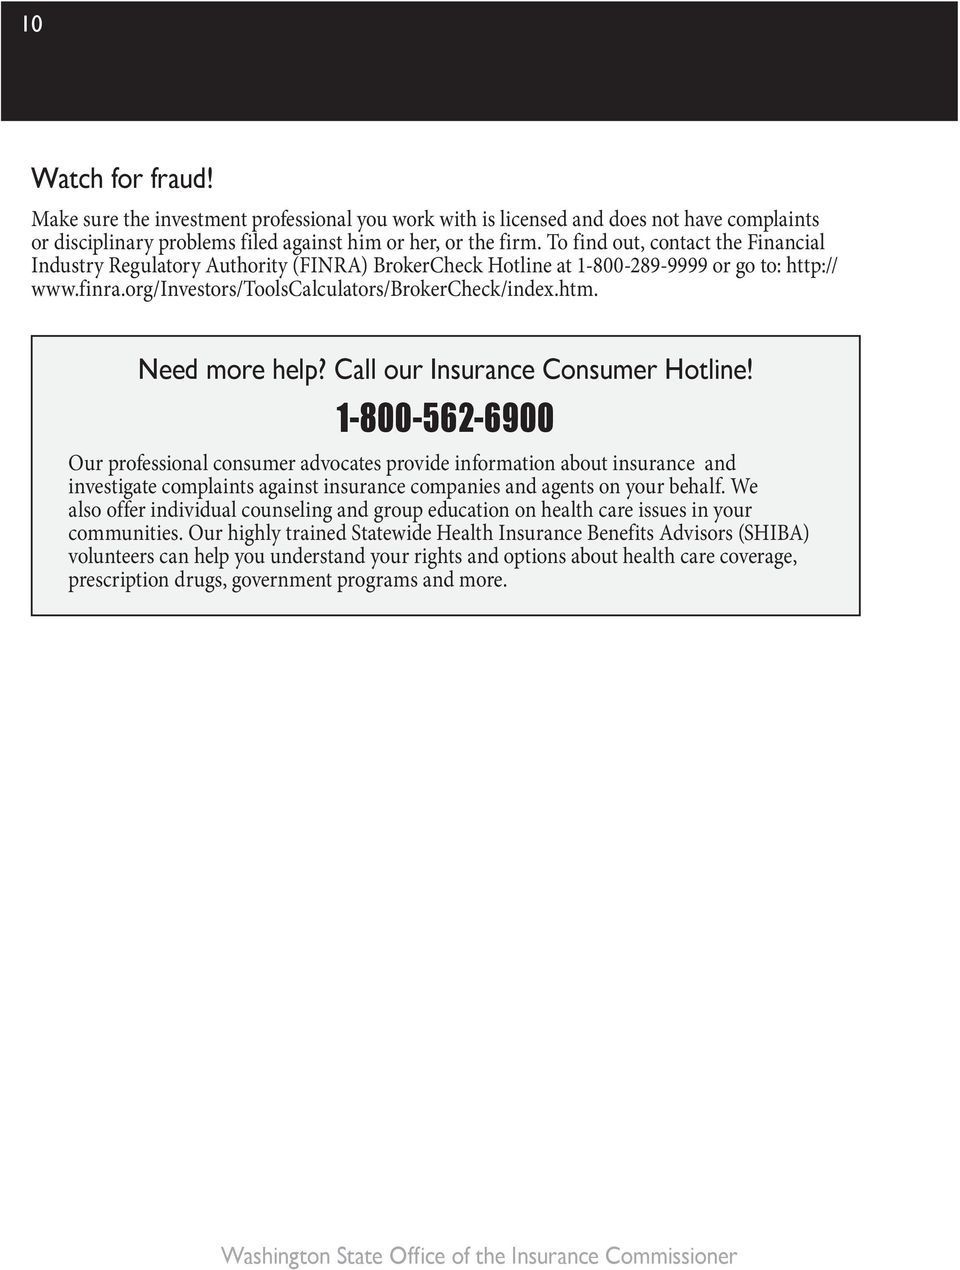 Need more help? Call our Insurance Consumer Hotline!